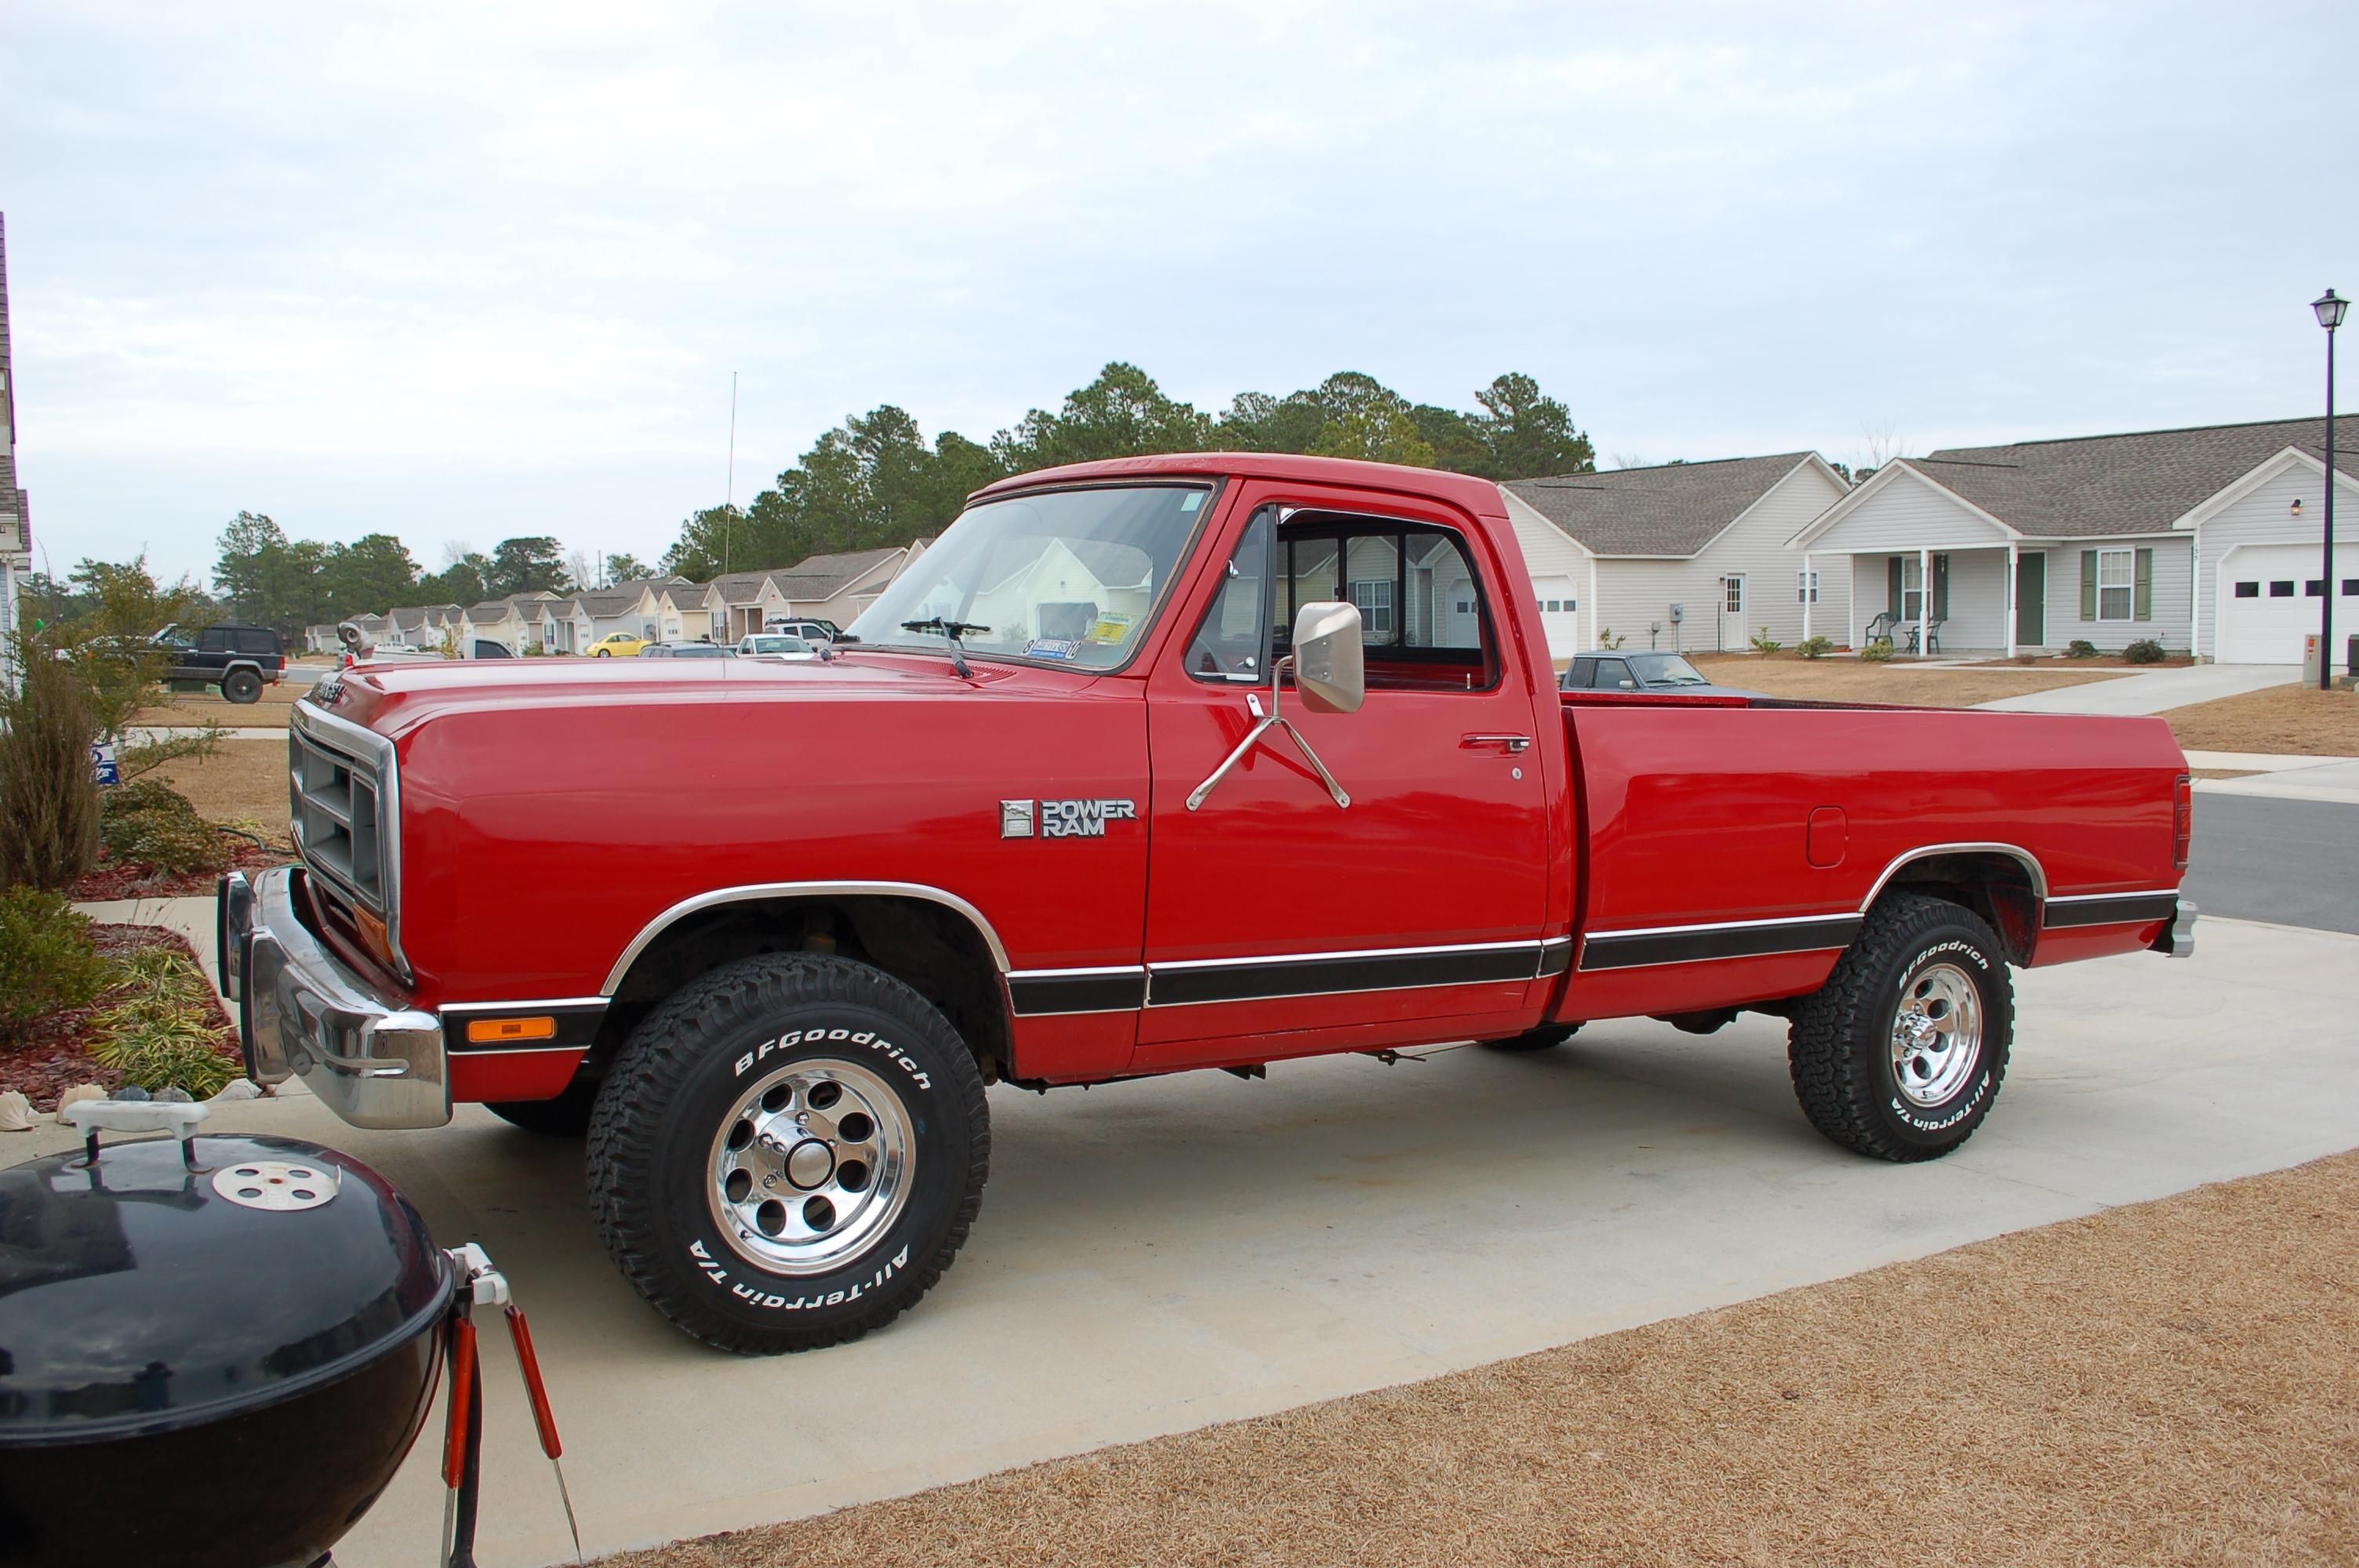 Surfphisher 1986 Dodge W-Series Pickup Specs, Photos, Modification